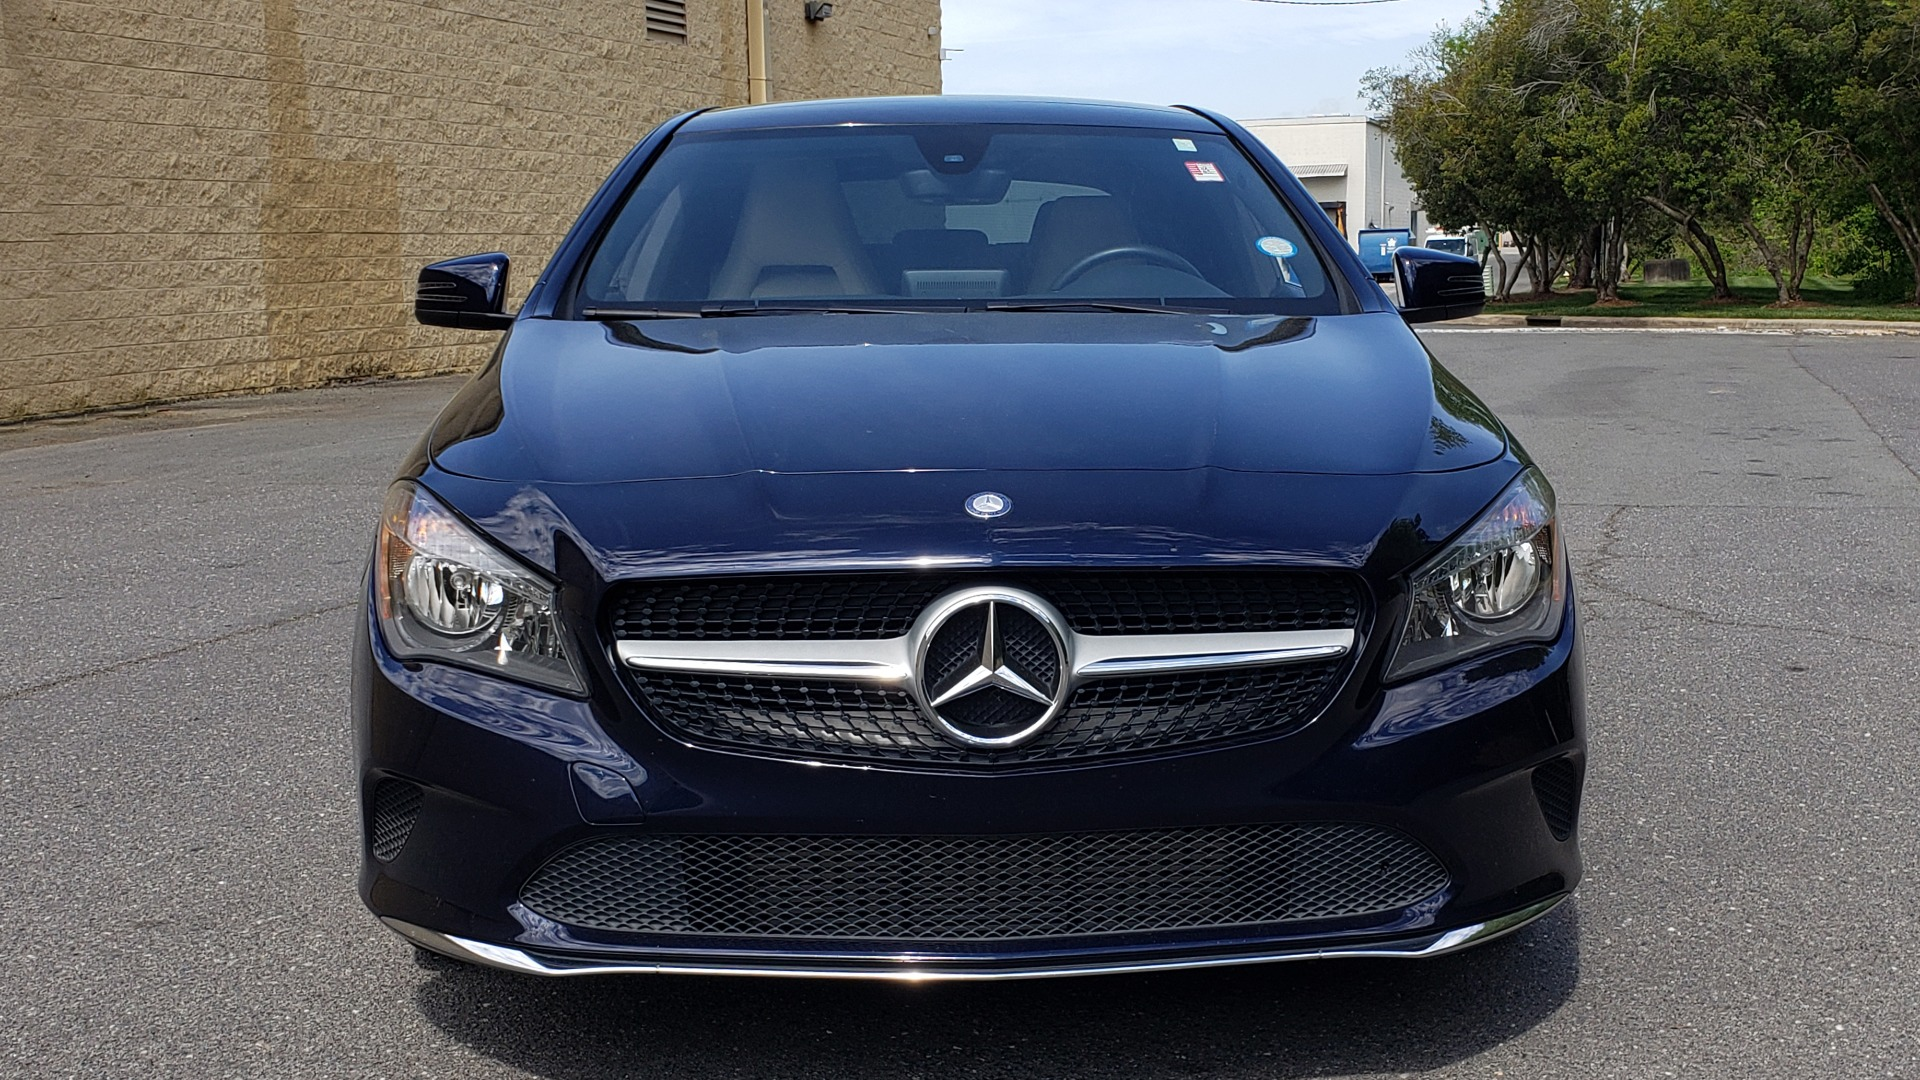 Used 2017 Mercedes-Benz CLA 250 PREMIUM / PANO-ROOF / HK SOUNDS / BSM / REARVIEW for sale Sold at Formula Imports in Charlotte NC 28227 17